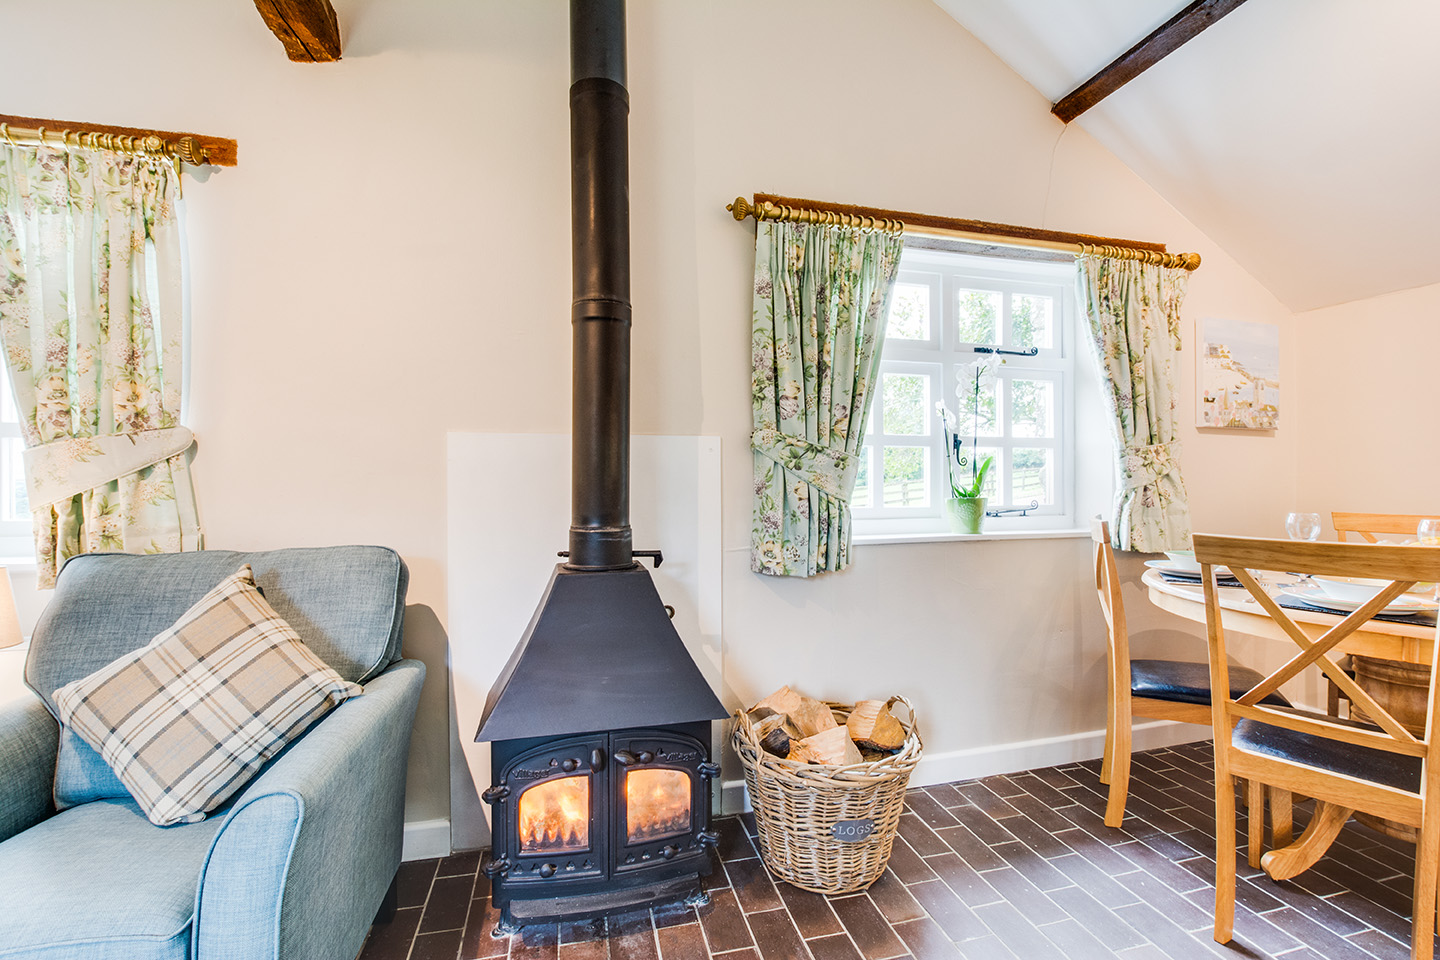 The lounge area of Snappers luxury self catering converted barn holiday cottage at Penrose Burden in North Cornwall 03.jpg